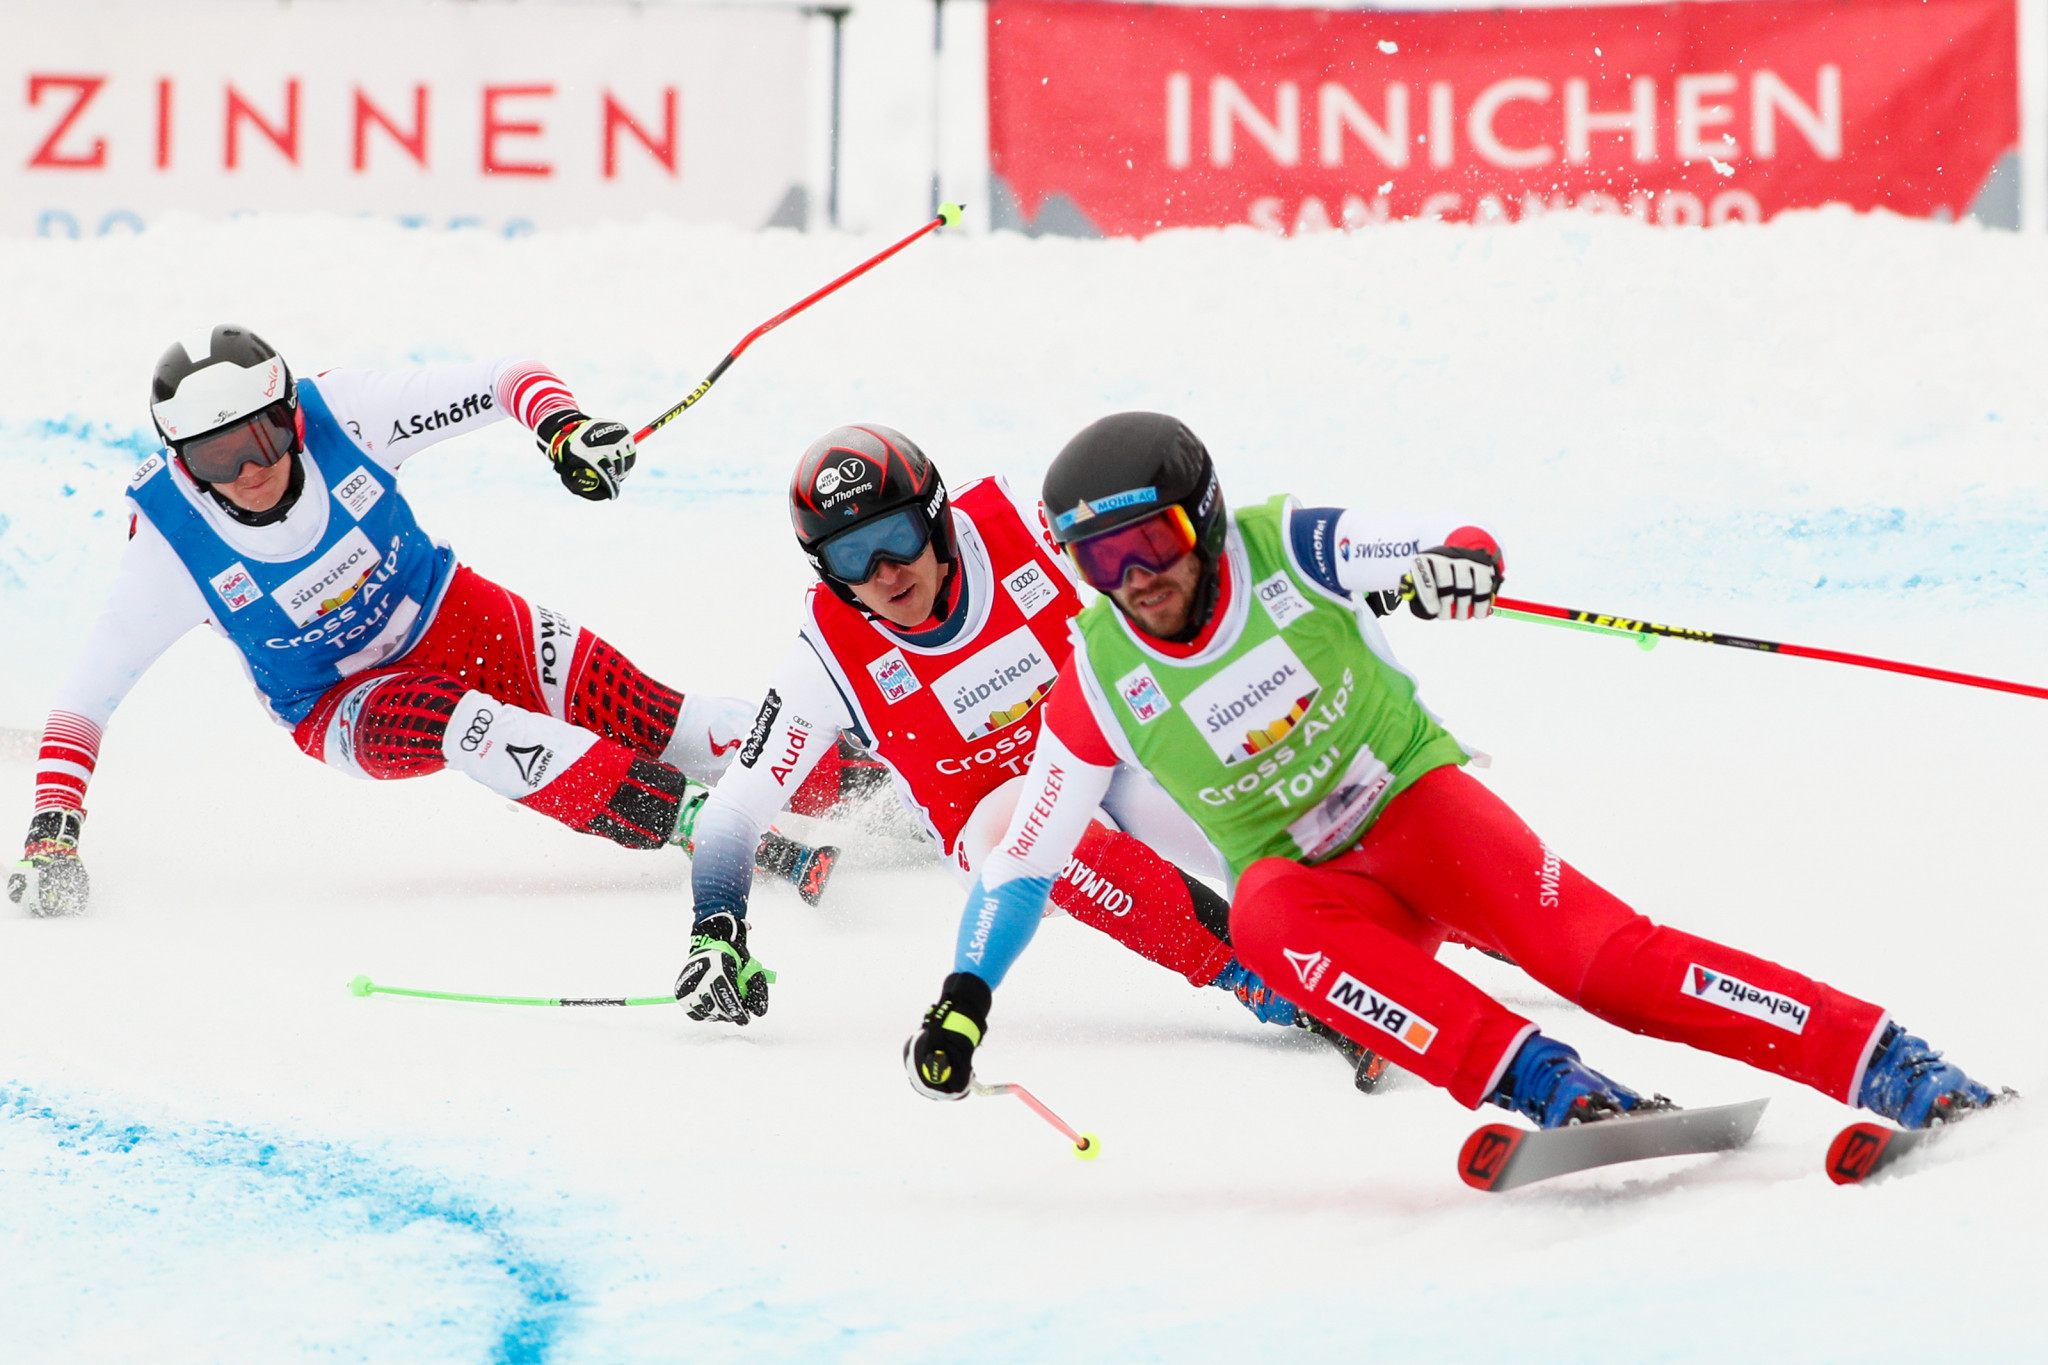 Organisers cancel FIS Ski Cross World Cup in Innichen/San Candido